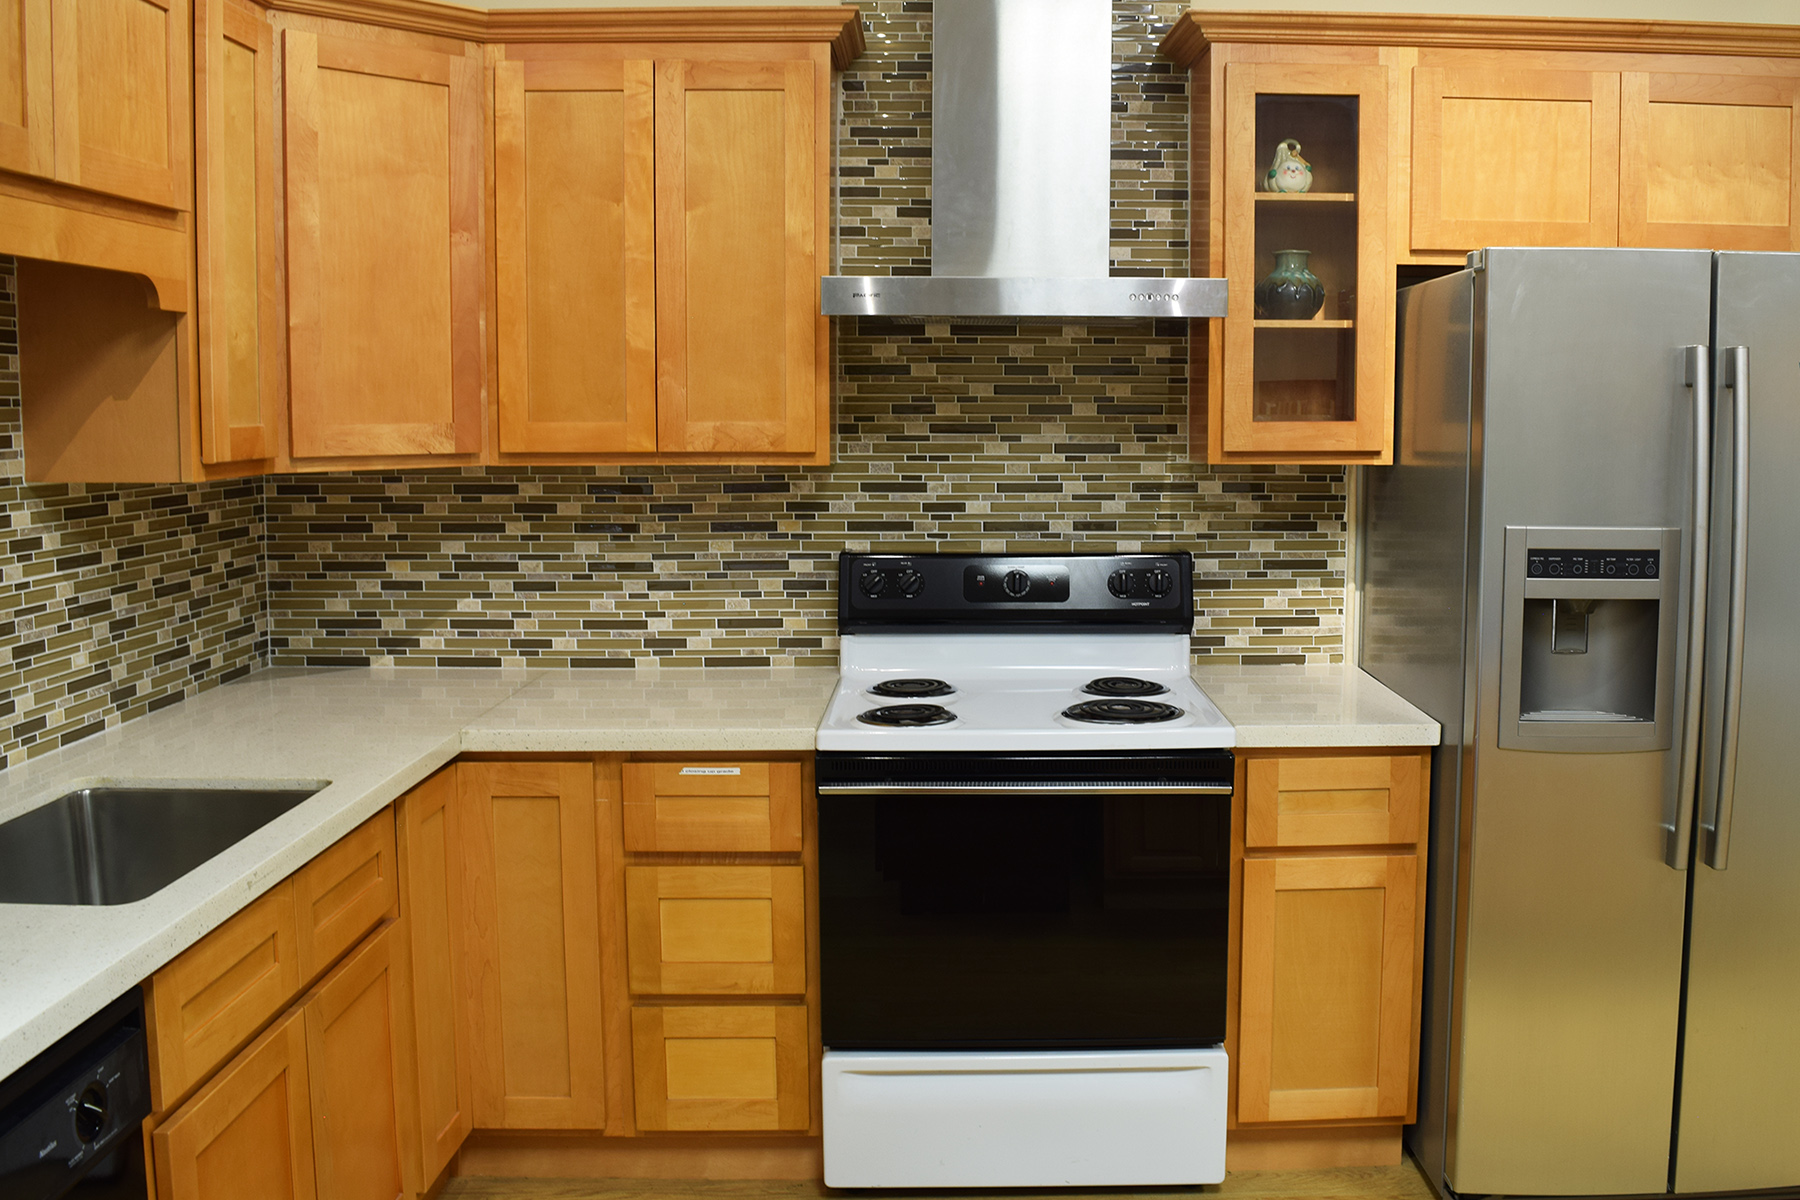 Honey Maple - Deco Kitchen and Bath on What Color Granite Goes With Honey Maple Cabinets  id=95056